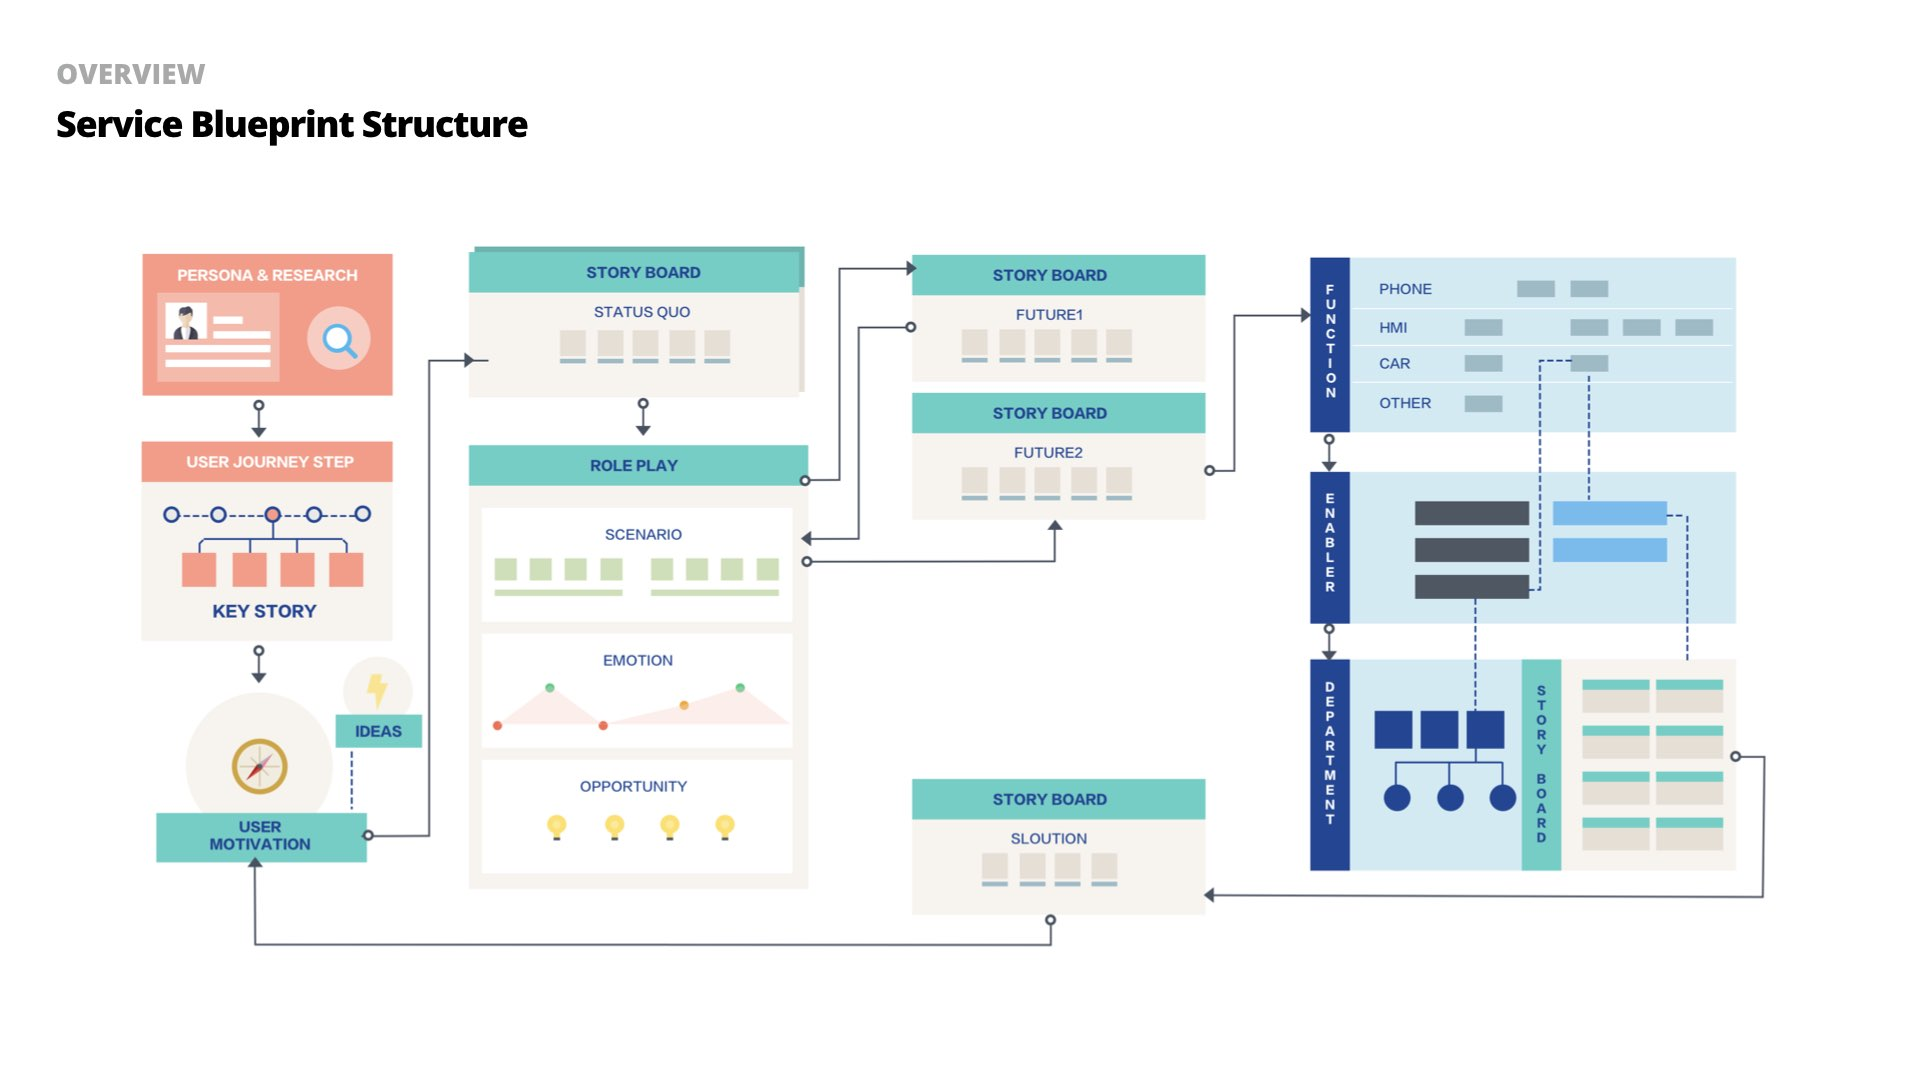 The structure of service blueprint system